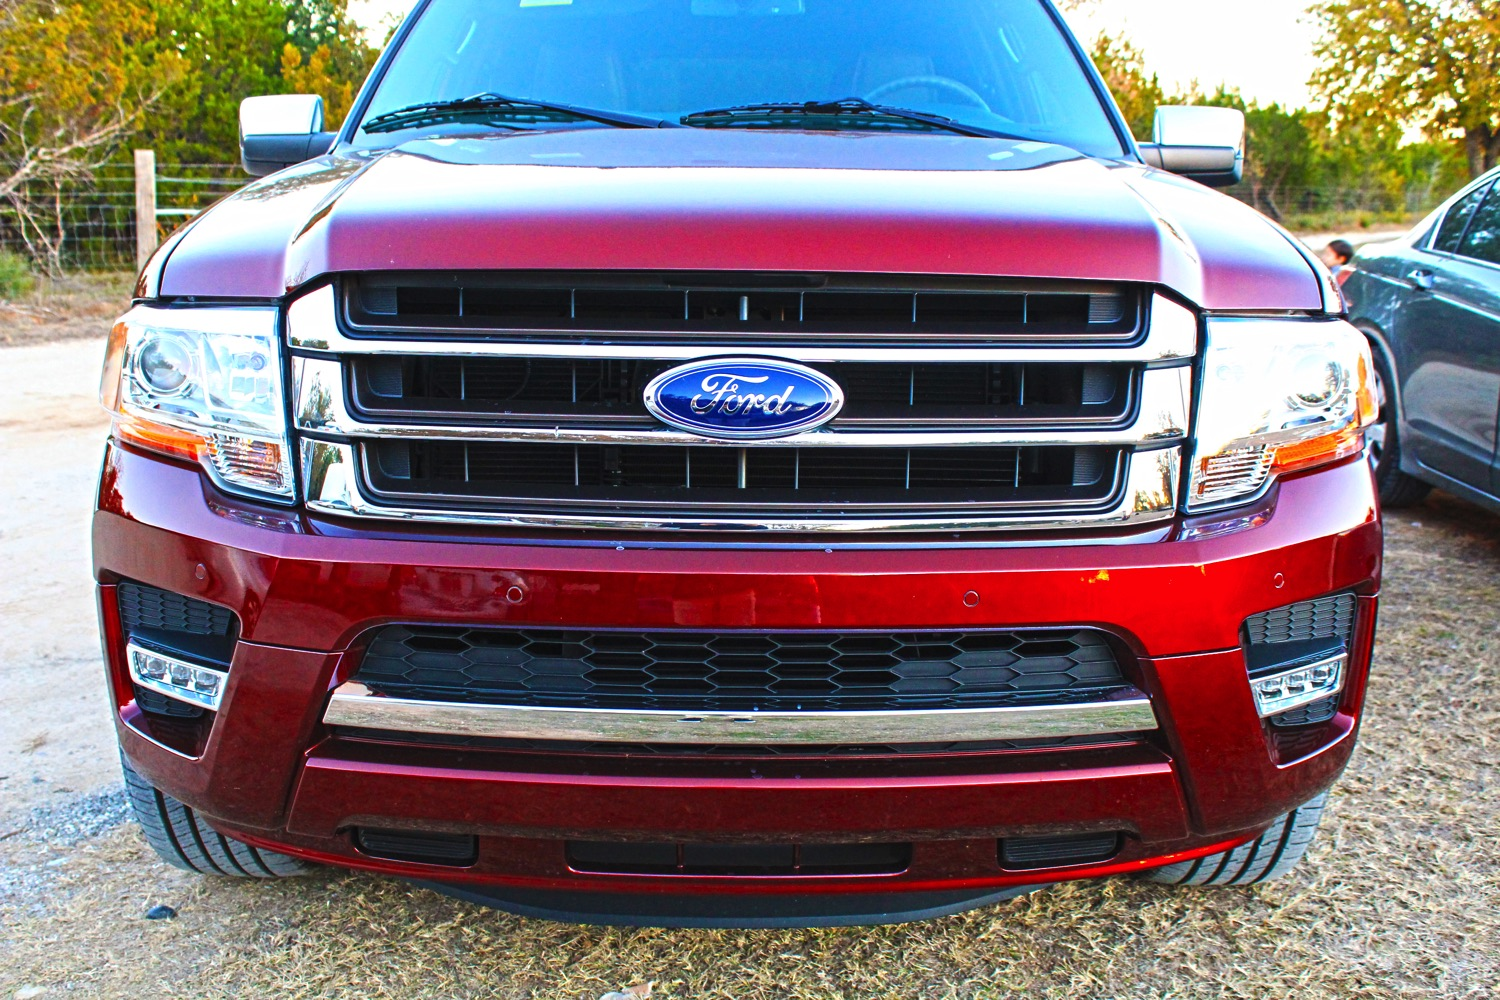 2015-Ford-Expedition-KingRanch-0025